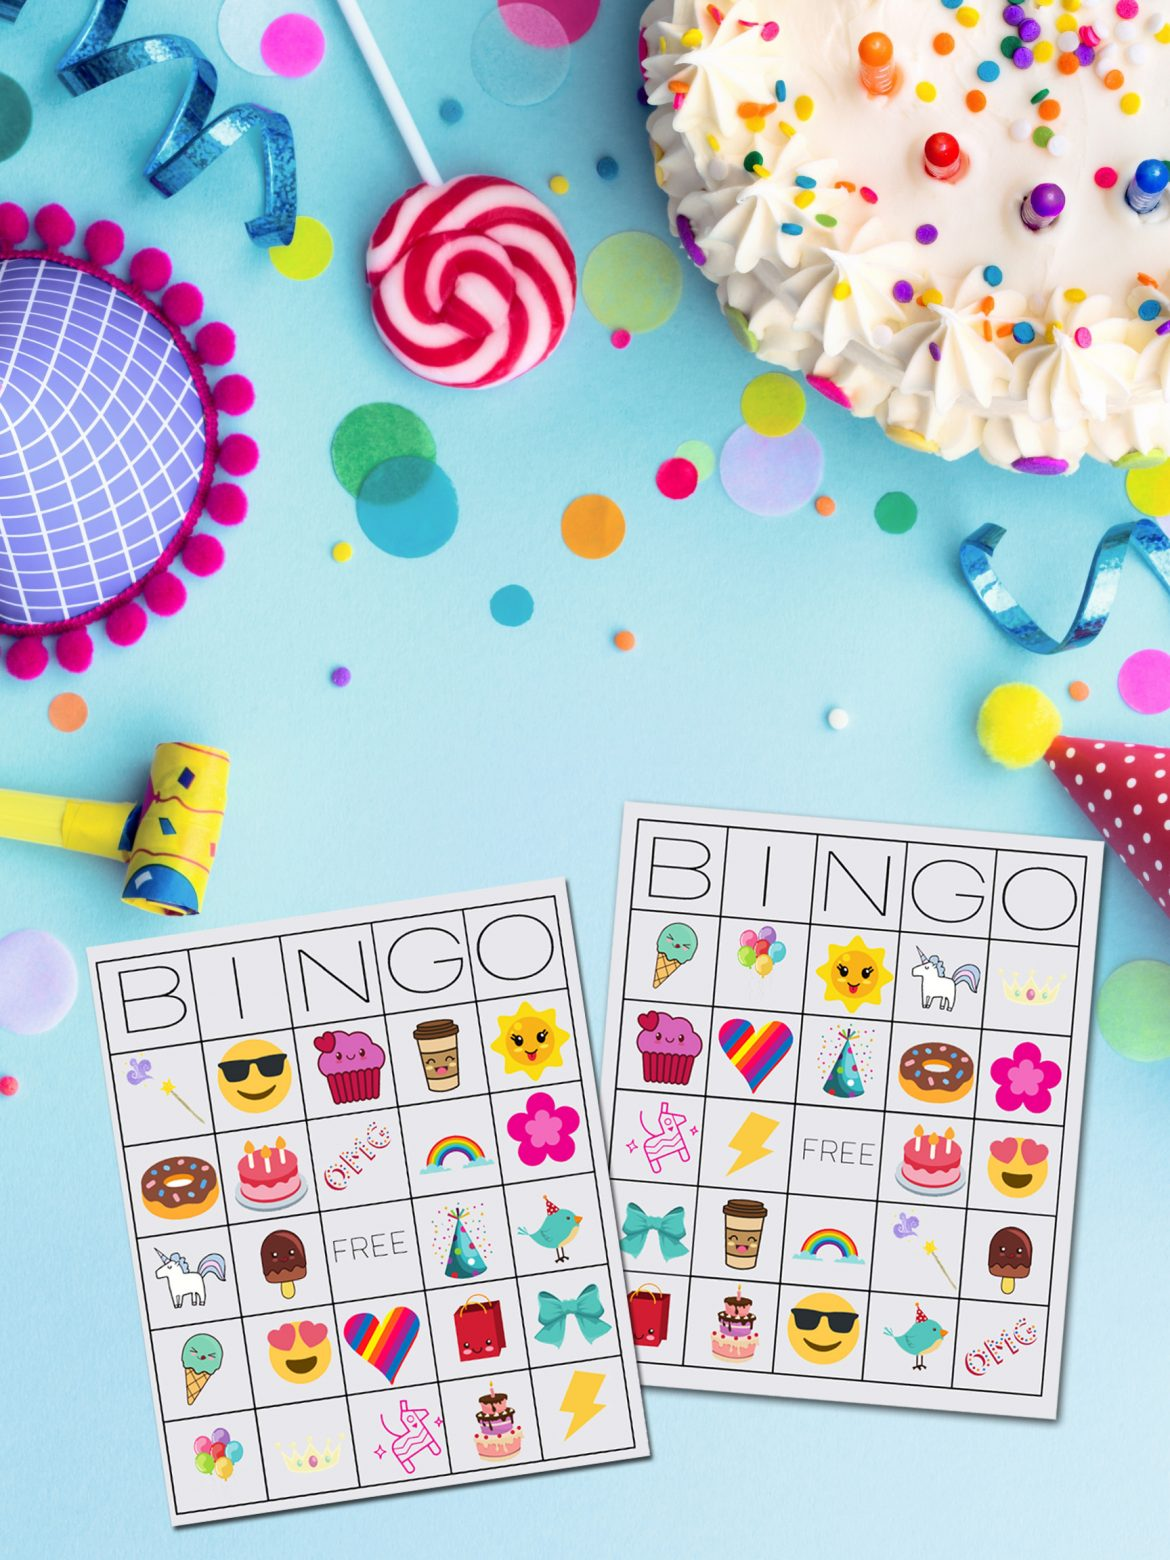 Unicorn Bingo Printable next to colorful candy